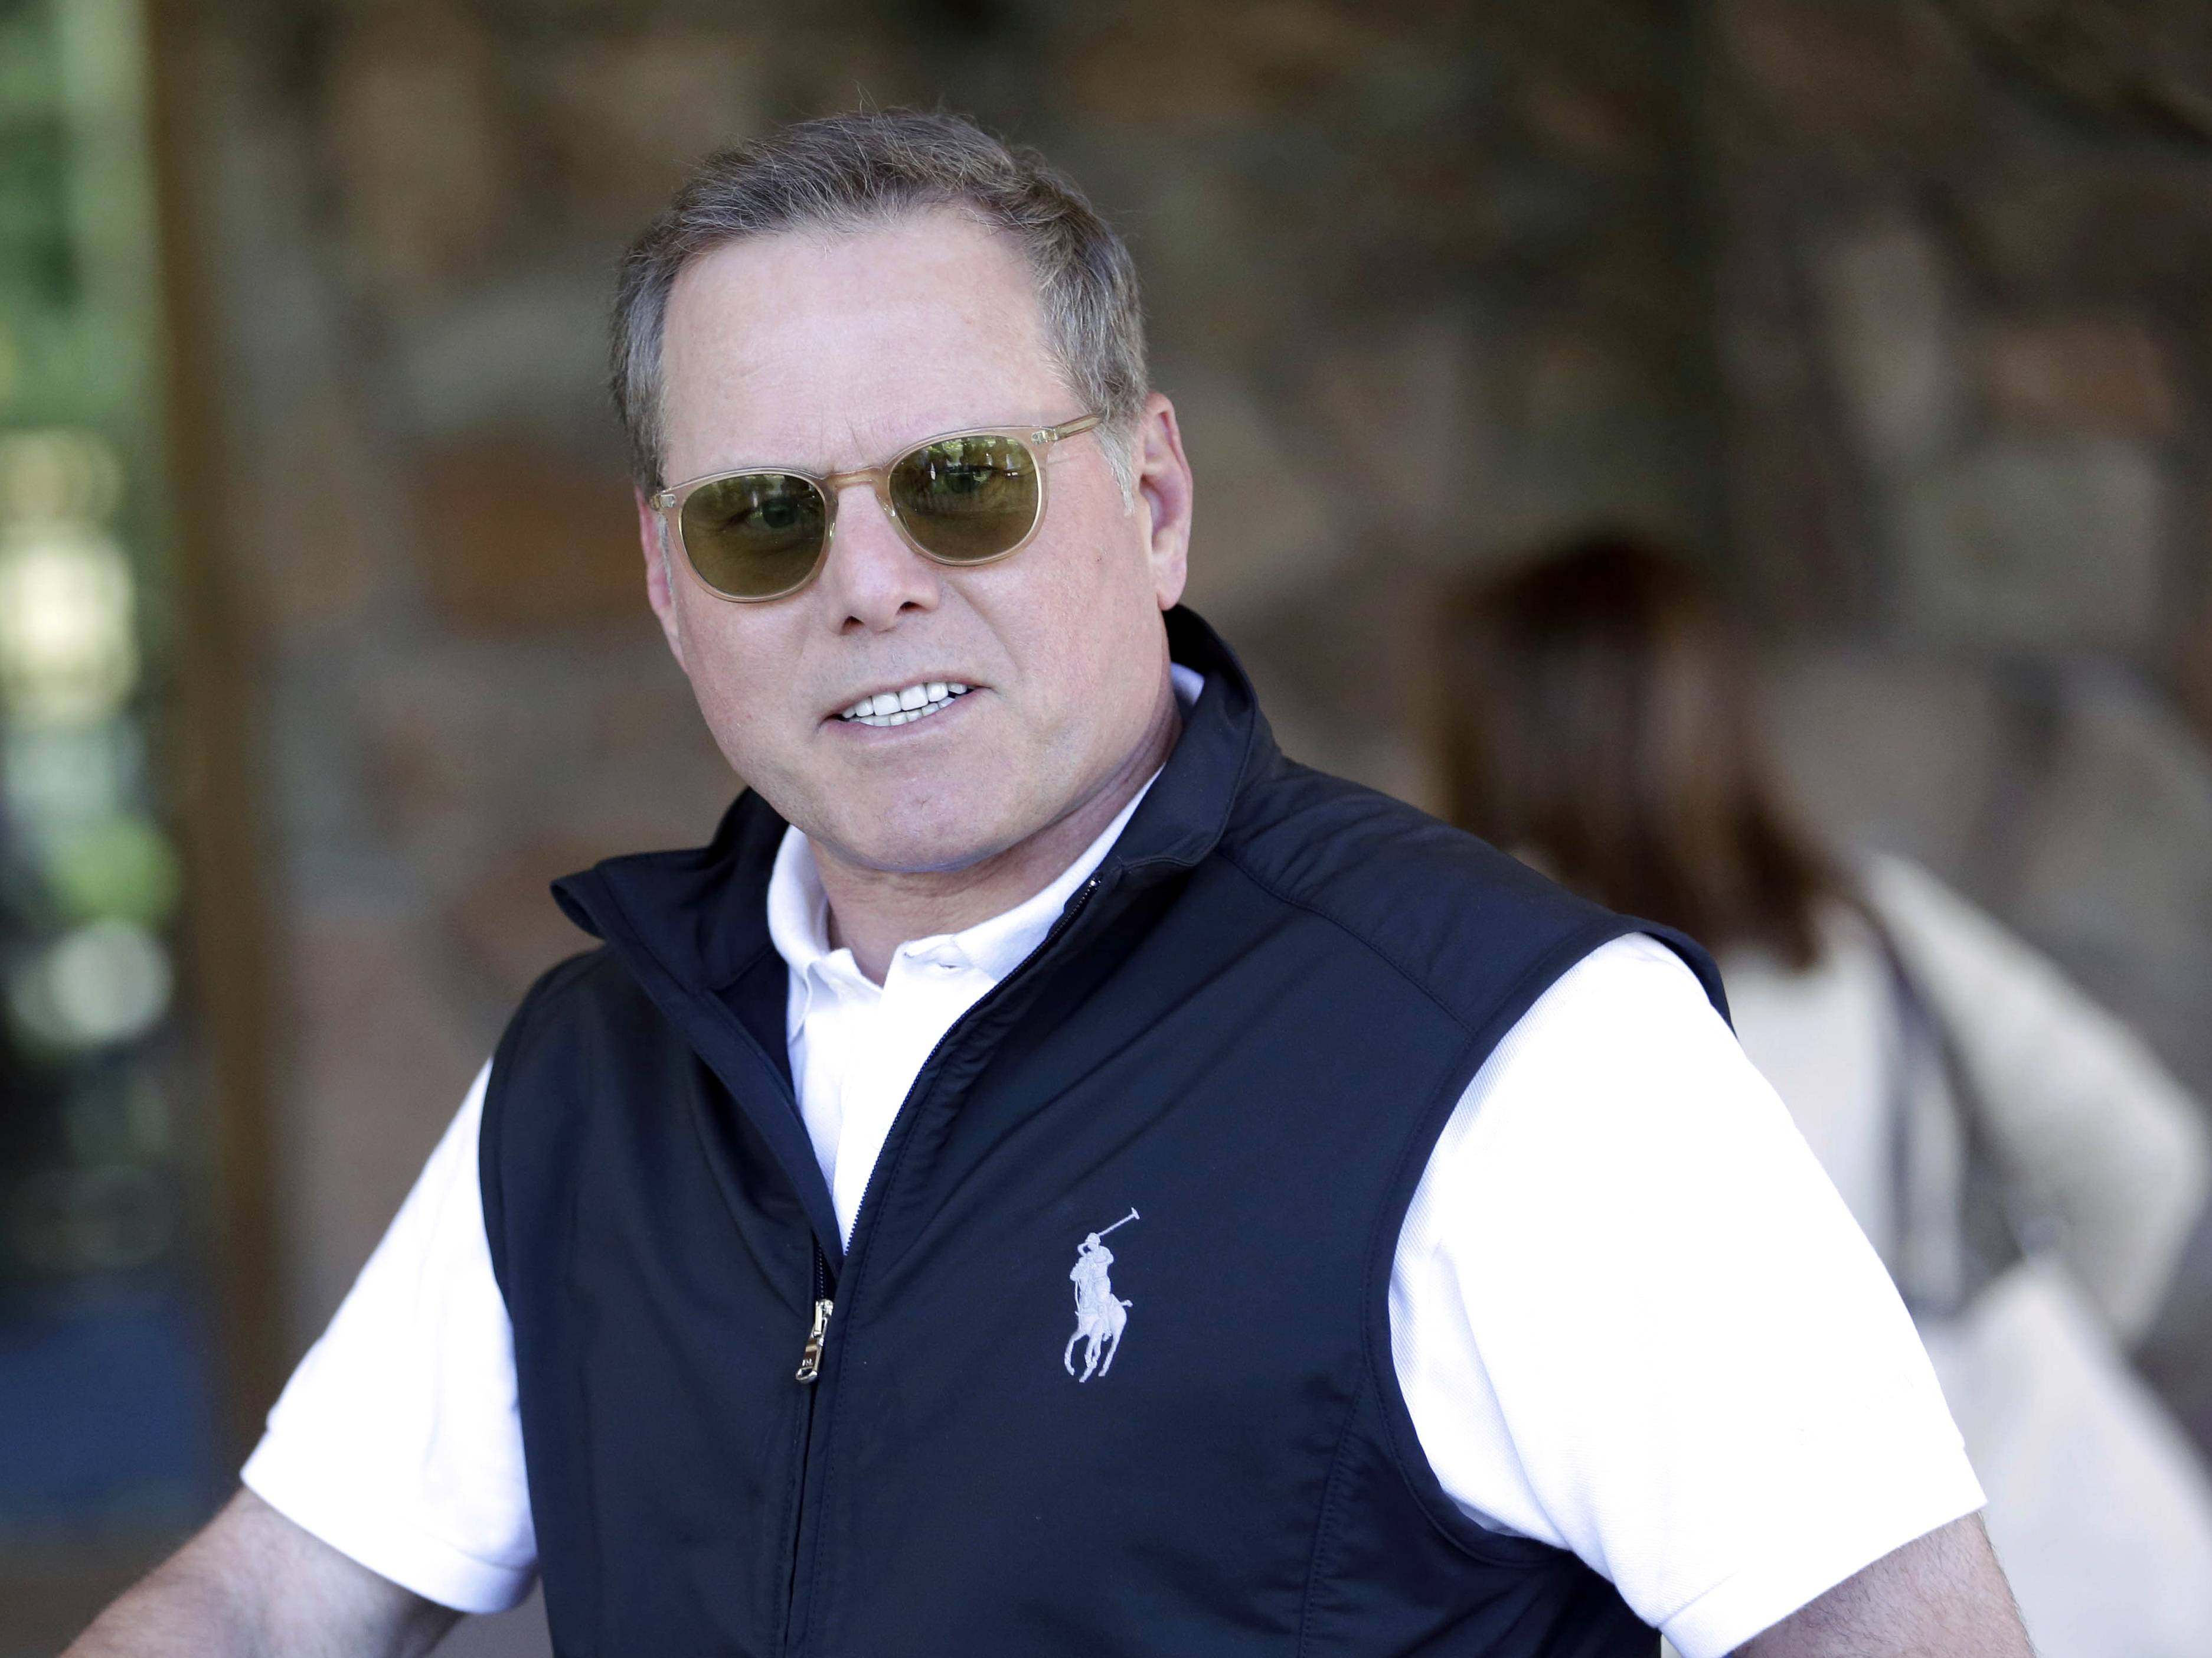 8.David Zaslav, president and chief executive officer of Discovery Communications Inc.